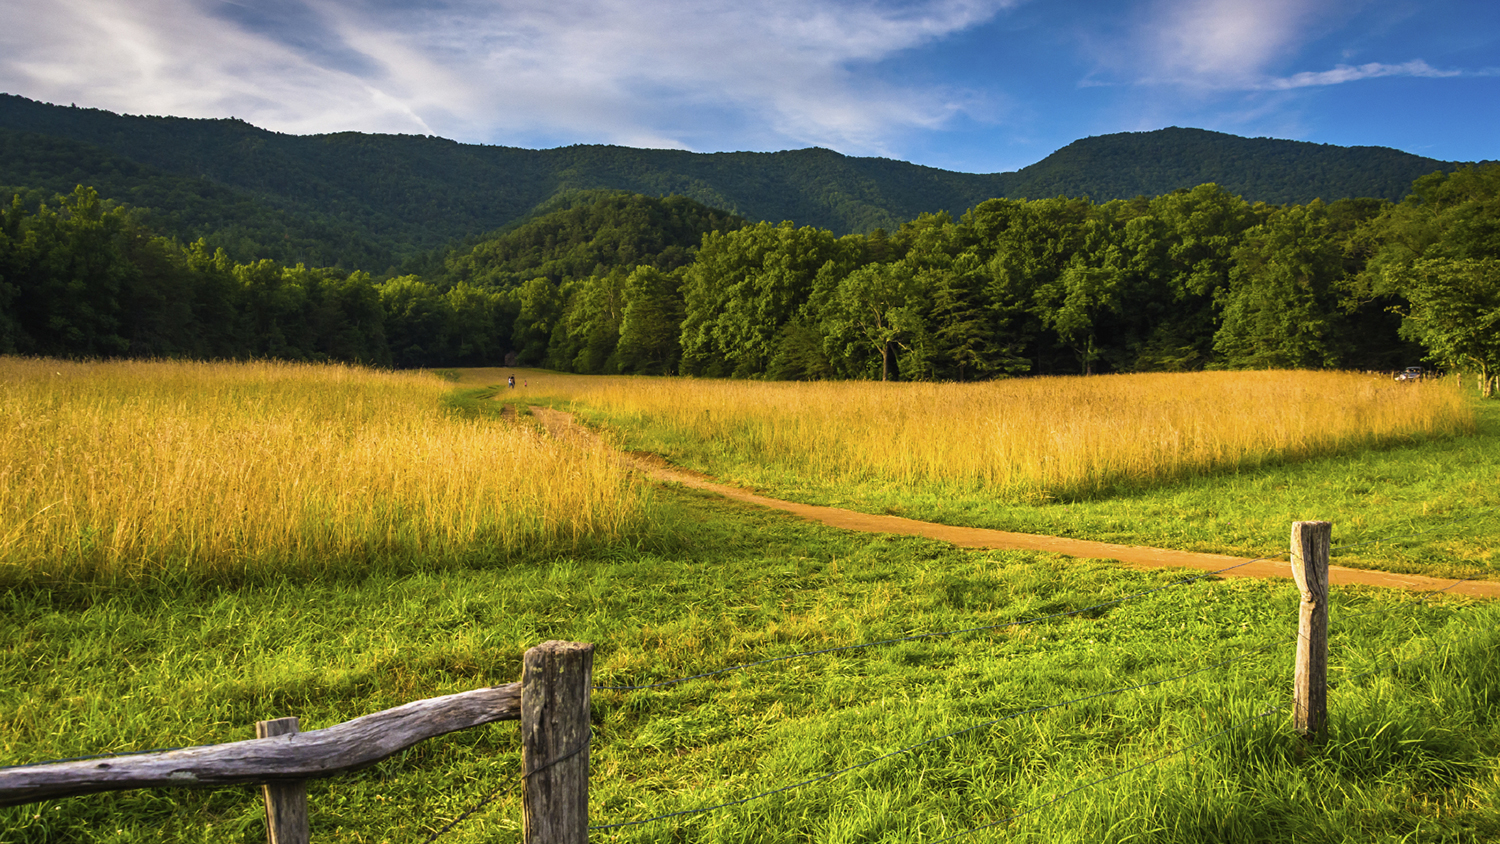 Fence, field, and forest